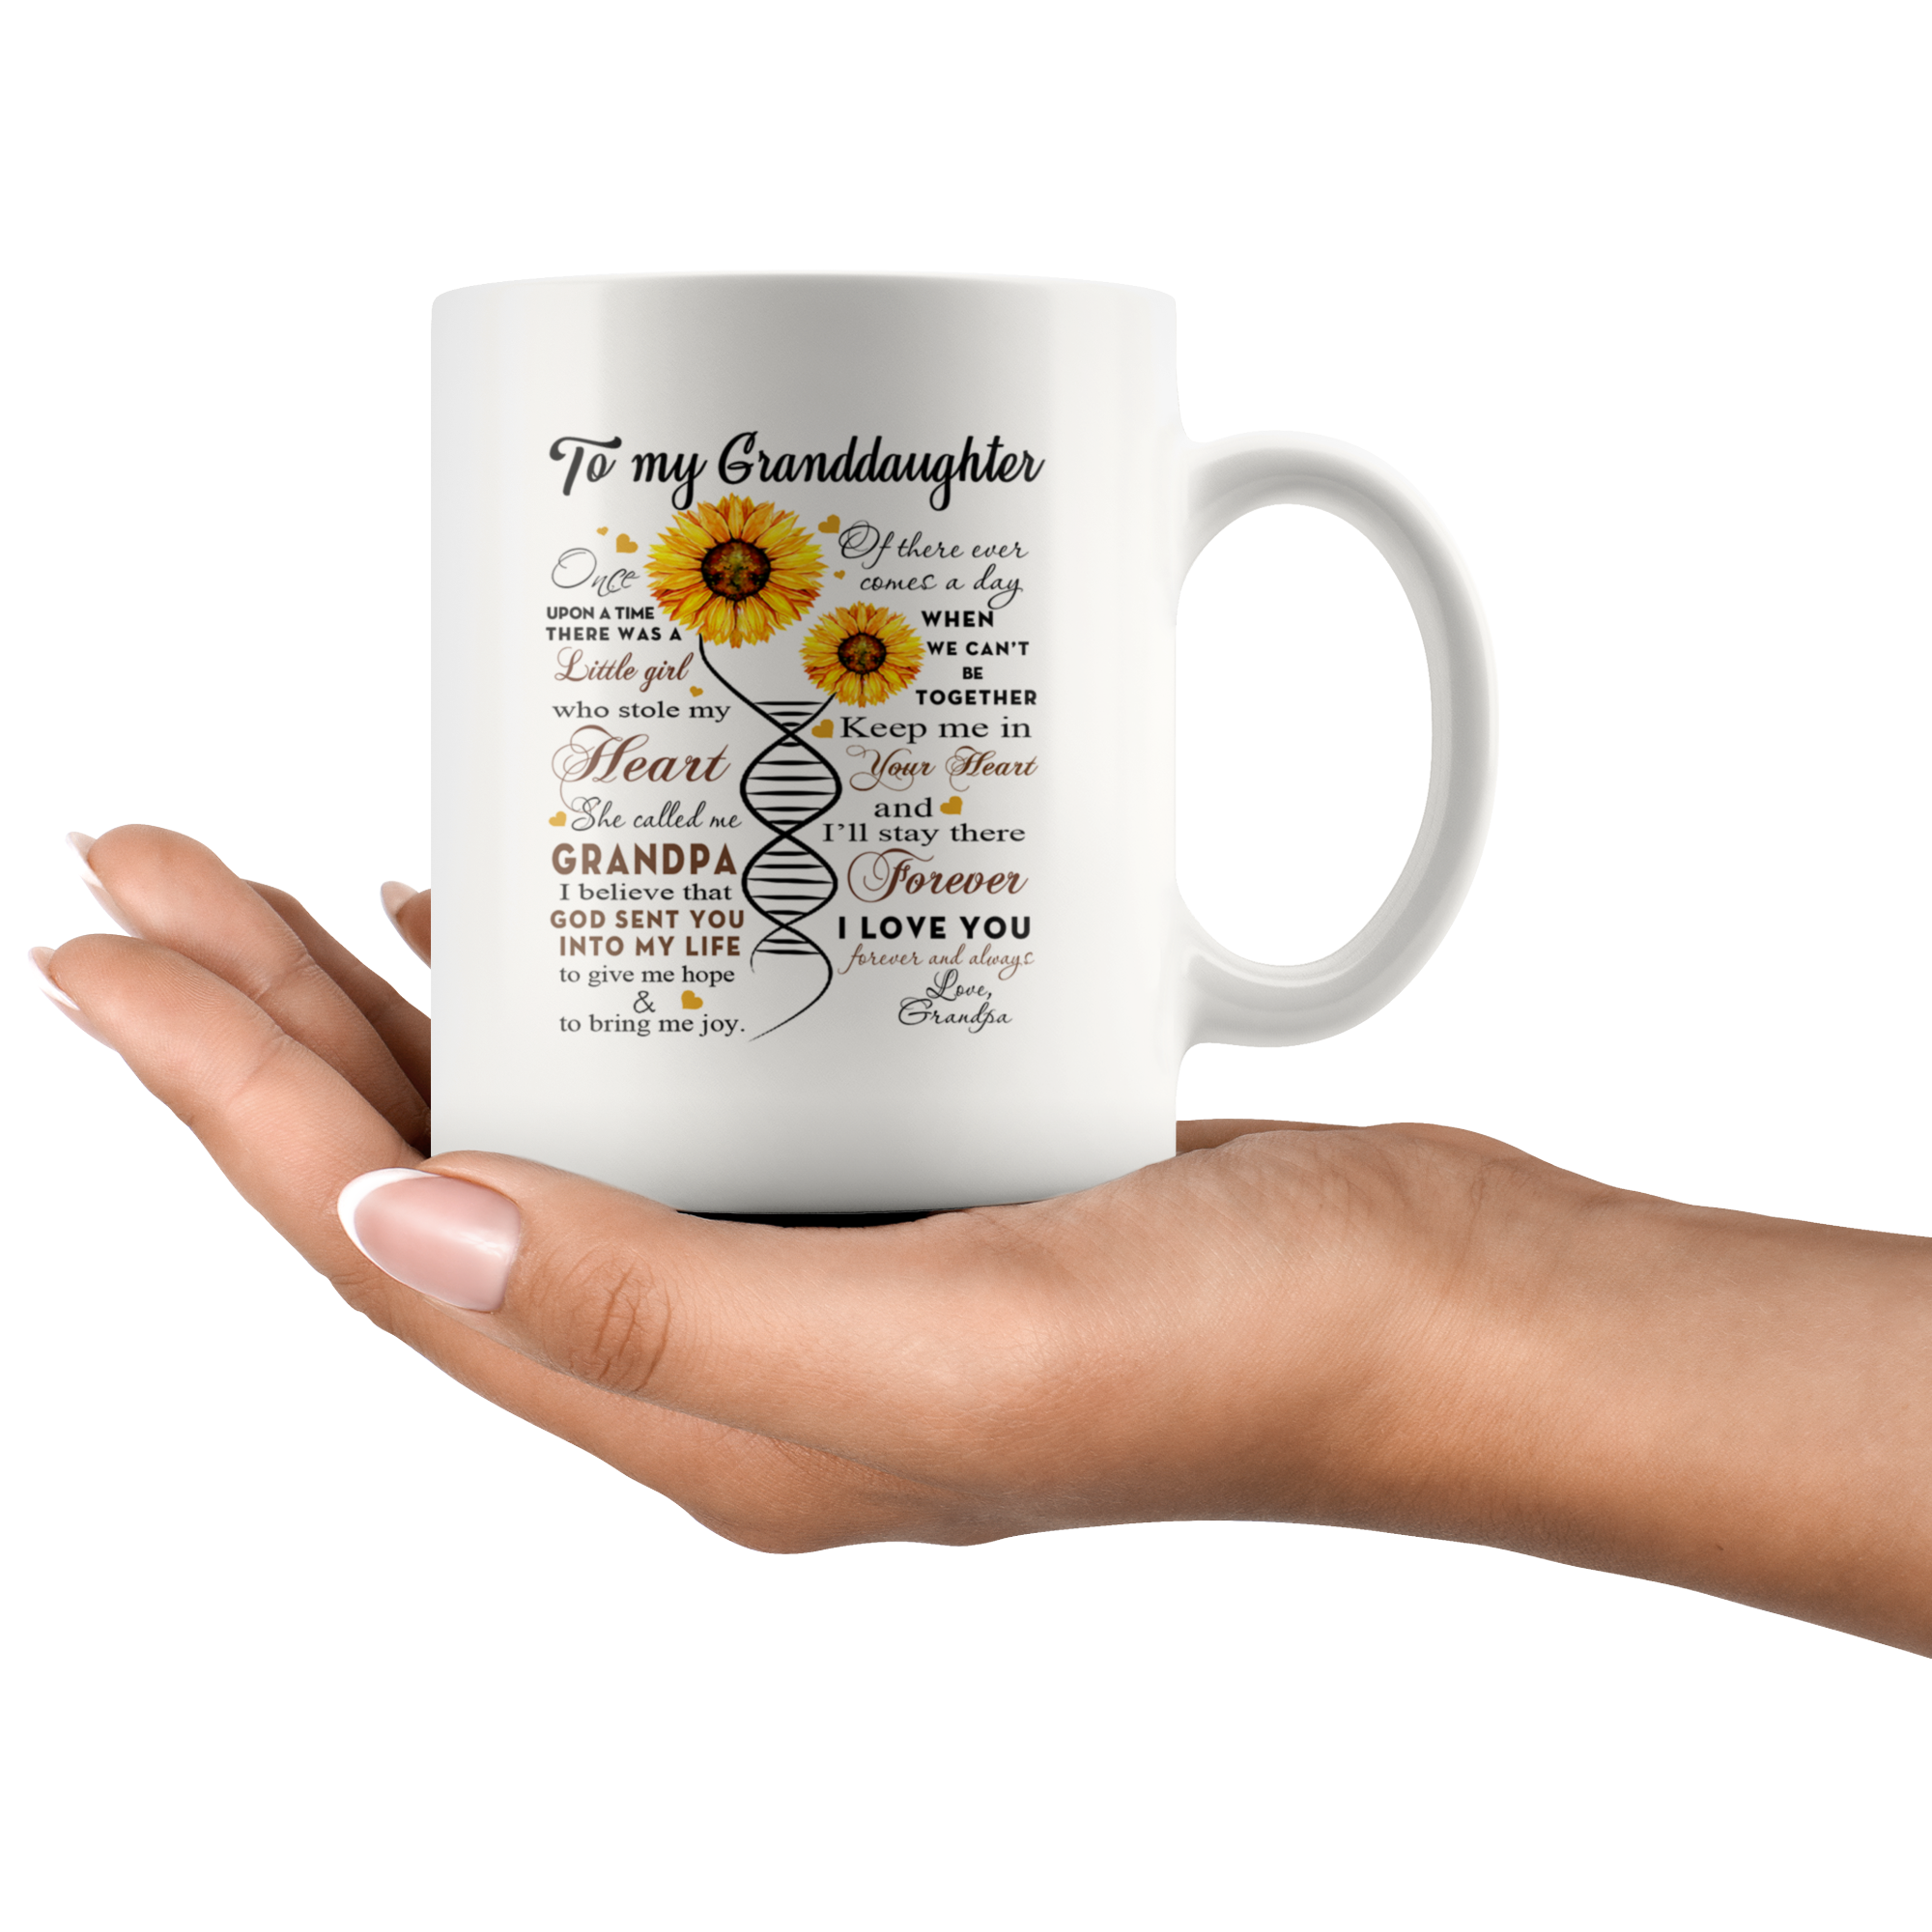 God Sent You Into My Life - 11oz White Mug